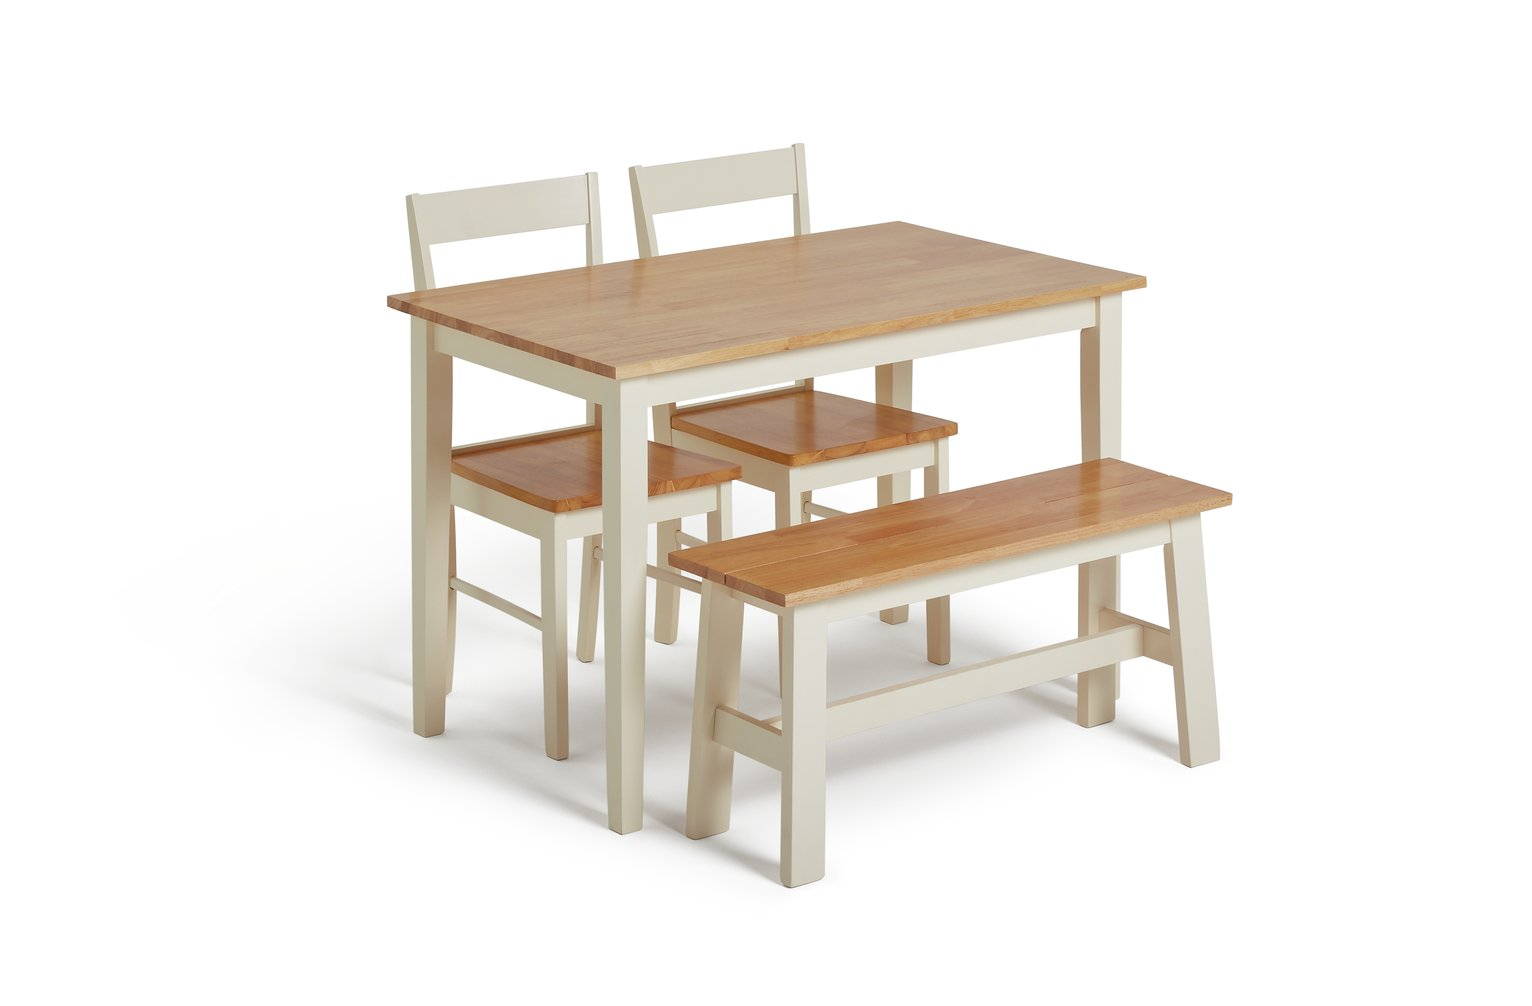 Argos Home Chicago Solid Wood Table, Bench & 2 Chairs